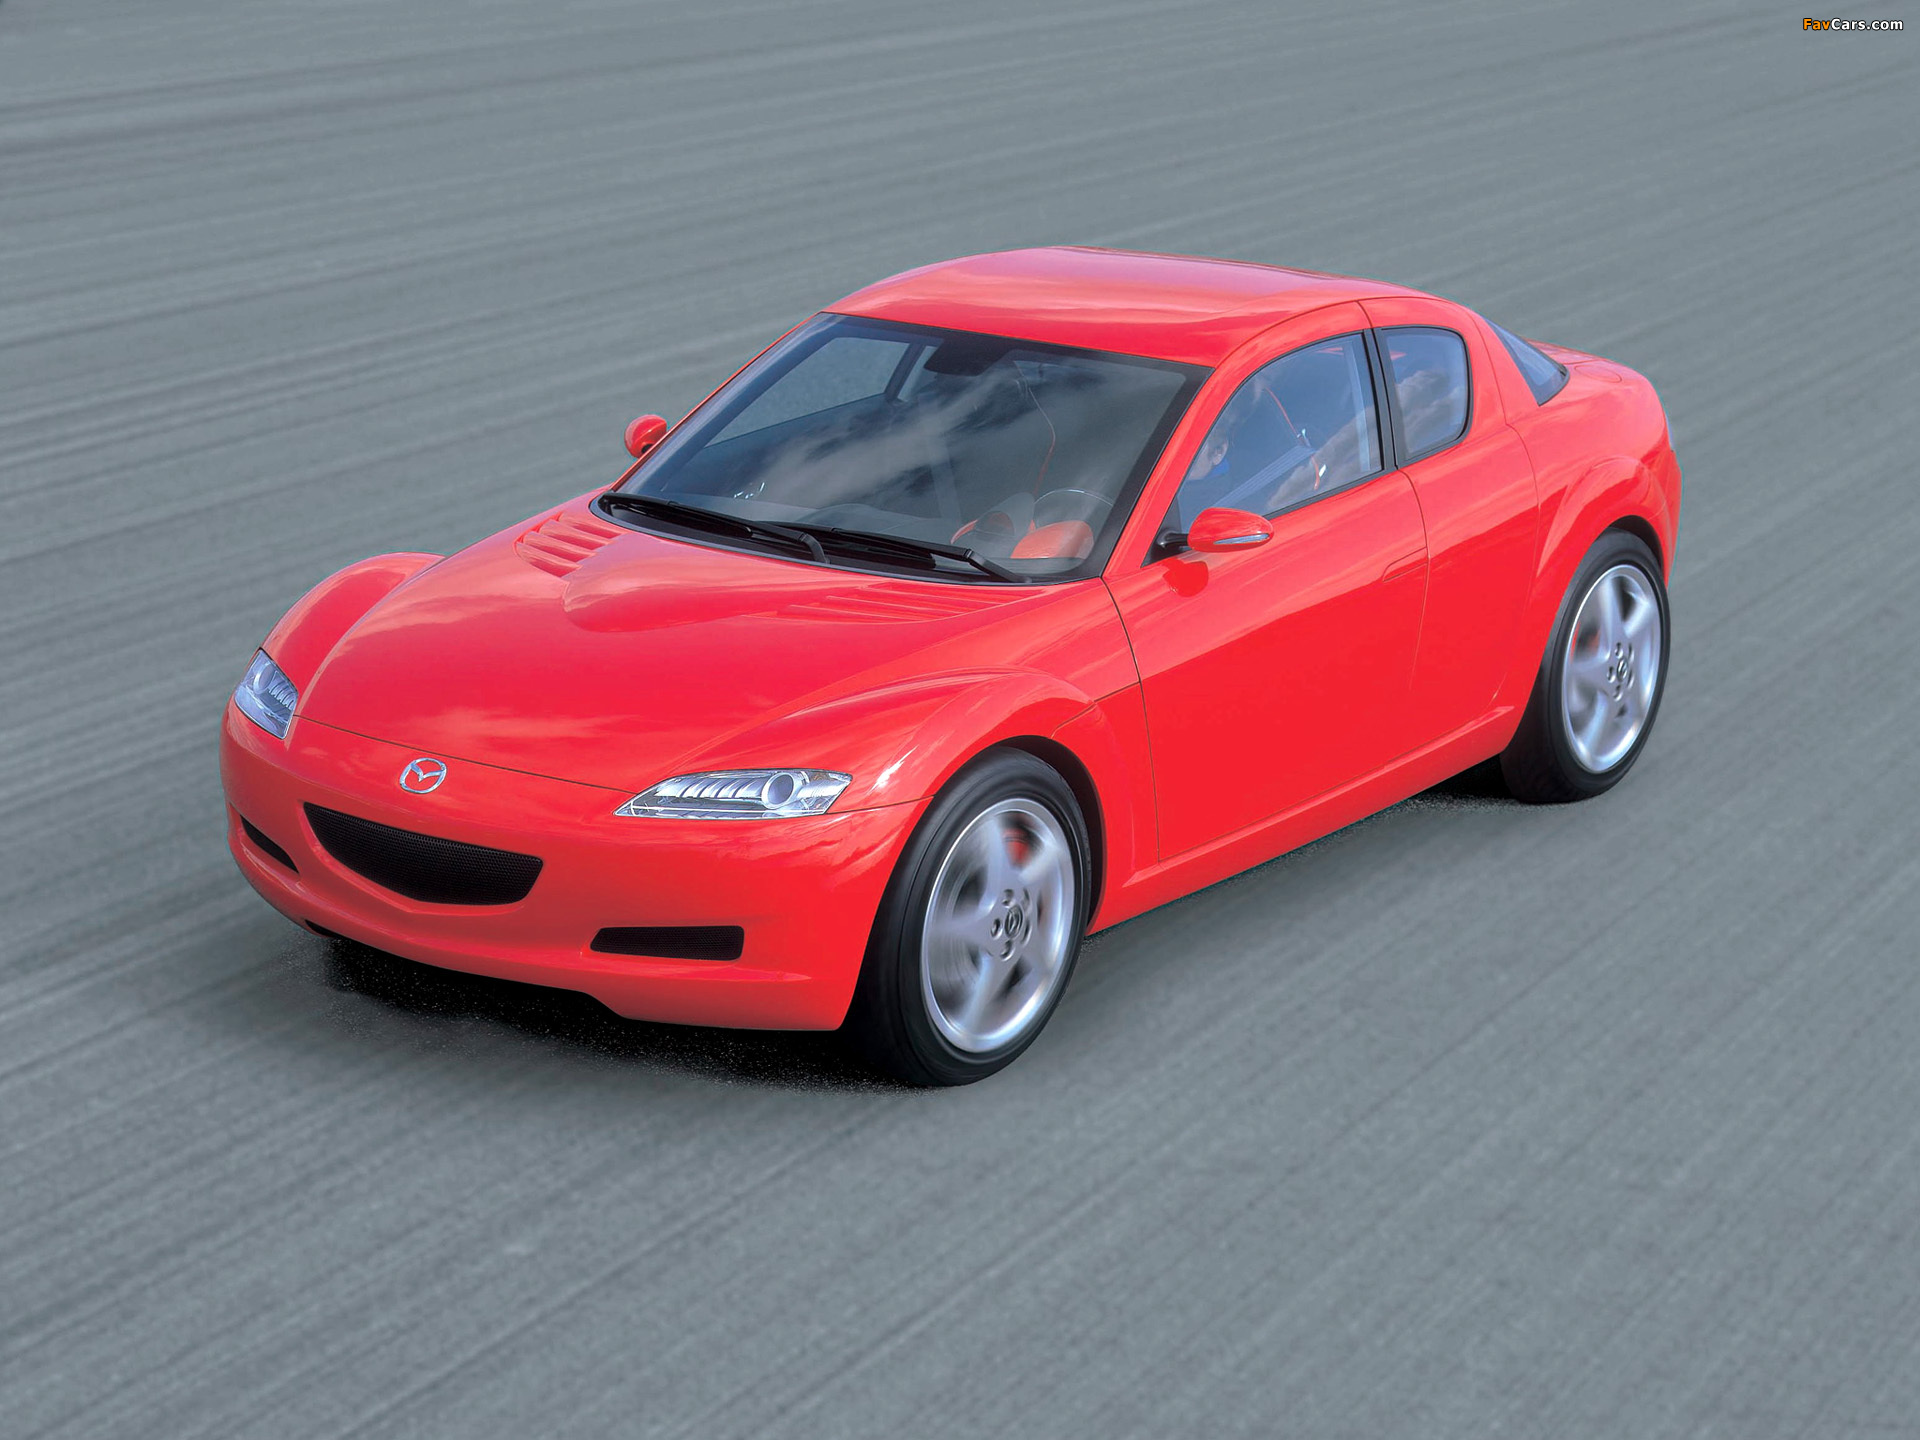 Mazda RX-8 Concept 2001 wallpapers (1920x1440)